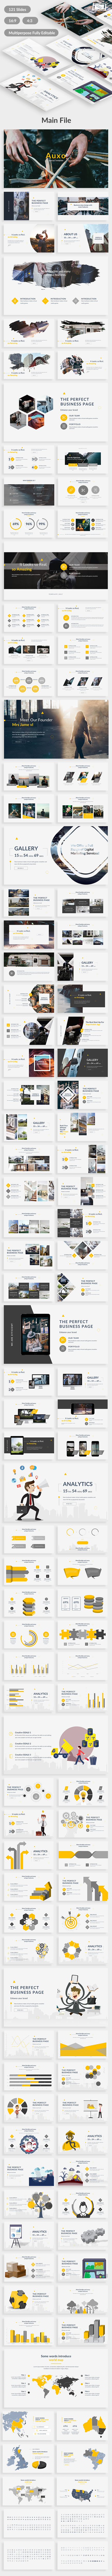 Auxo Premium Multipurpose Keynote Template - Creative Keynote Templates